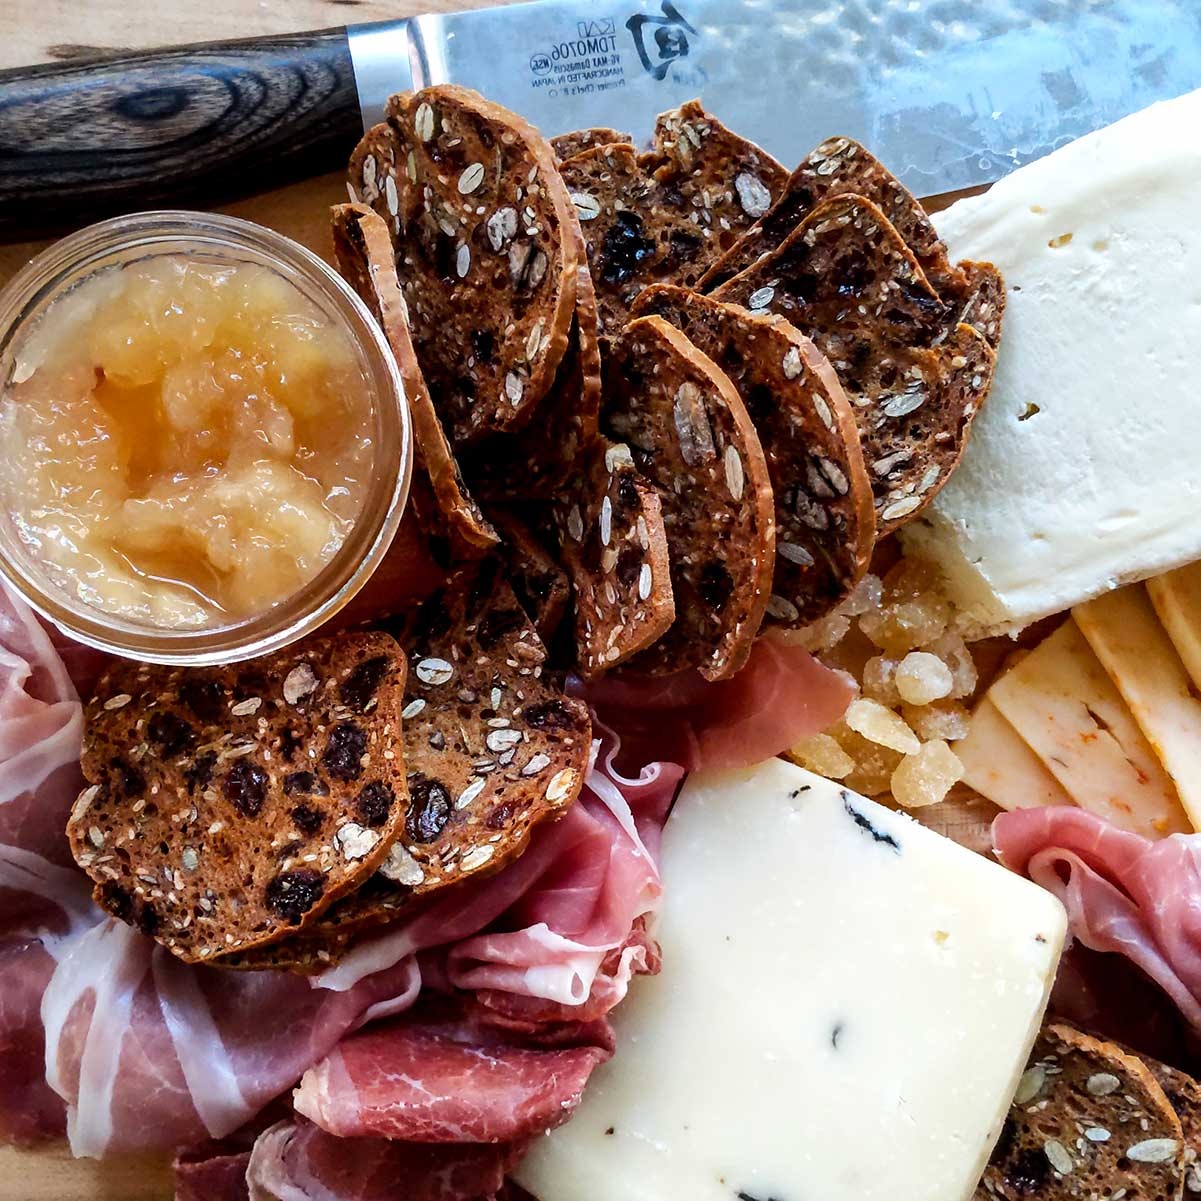 Peach jam on a charcuterie meat and cheese board